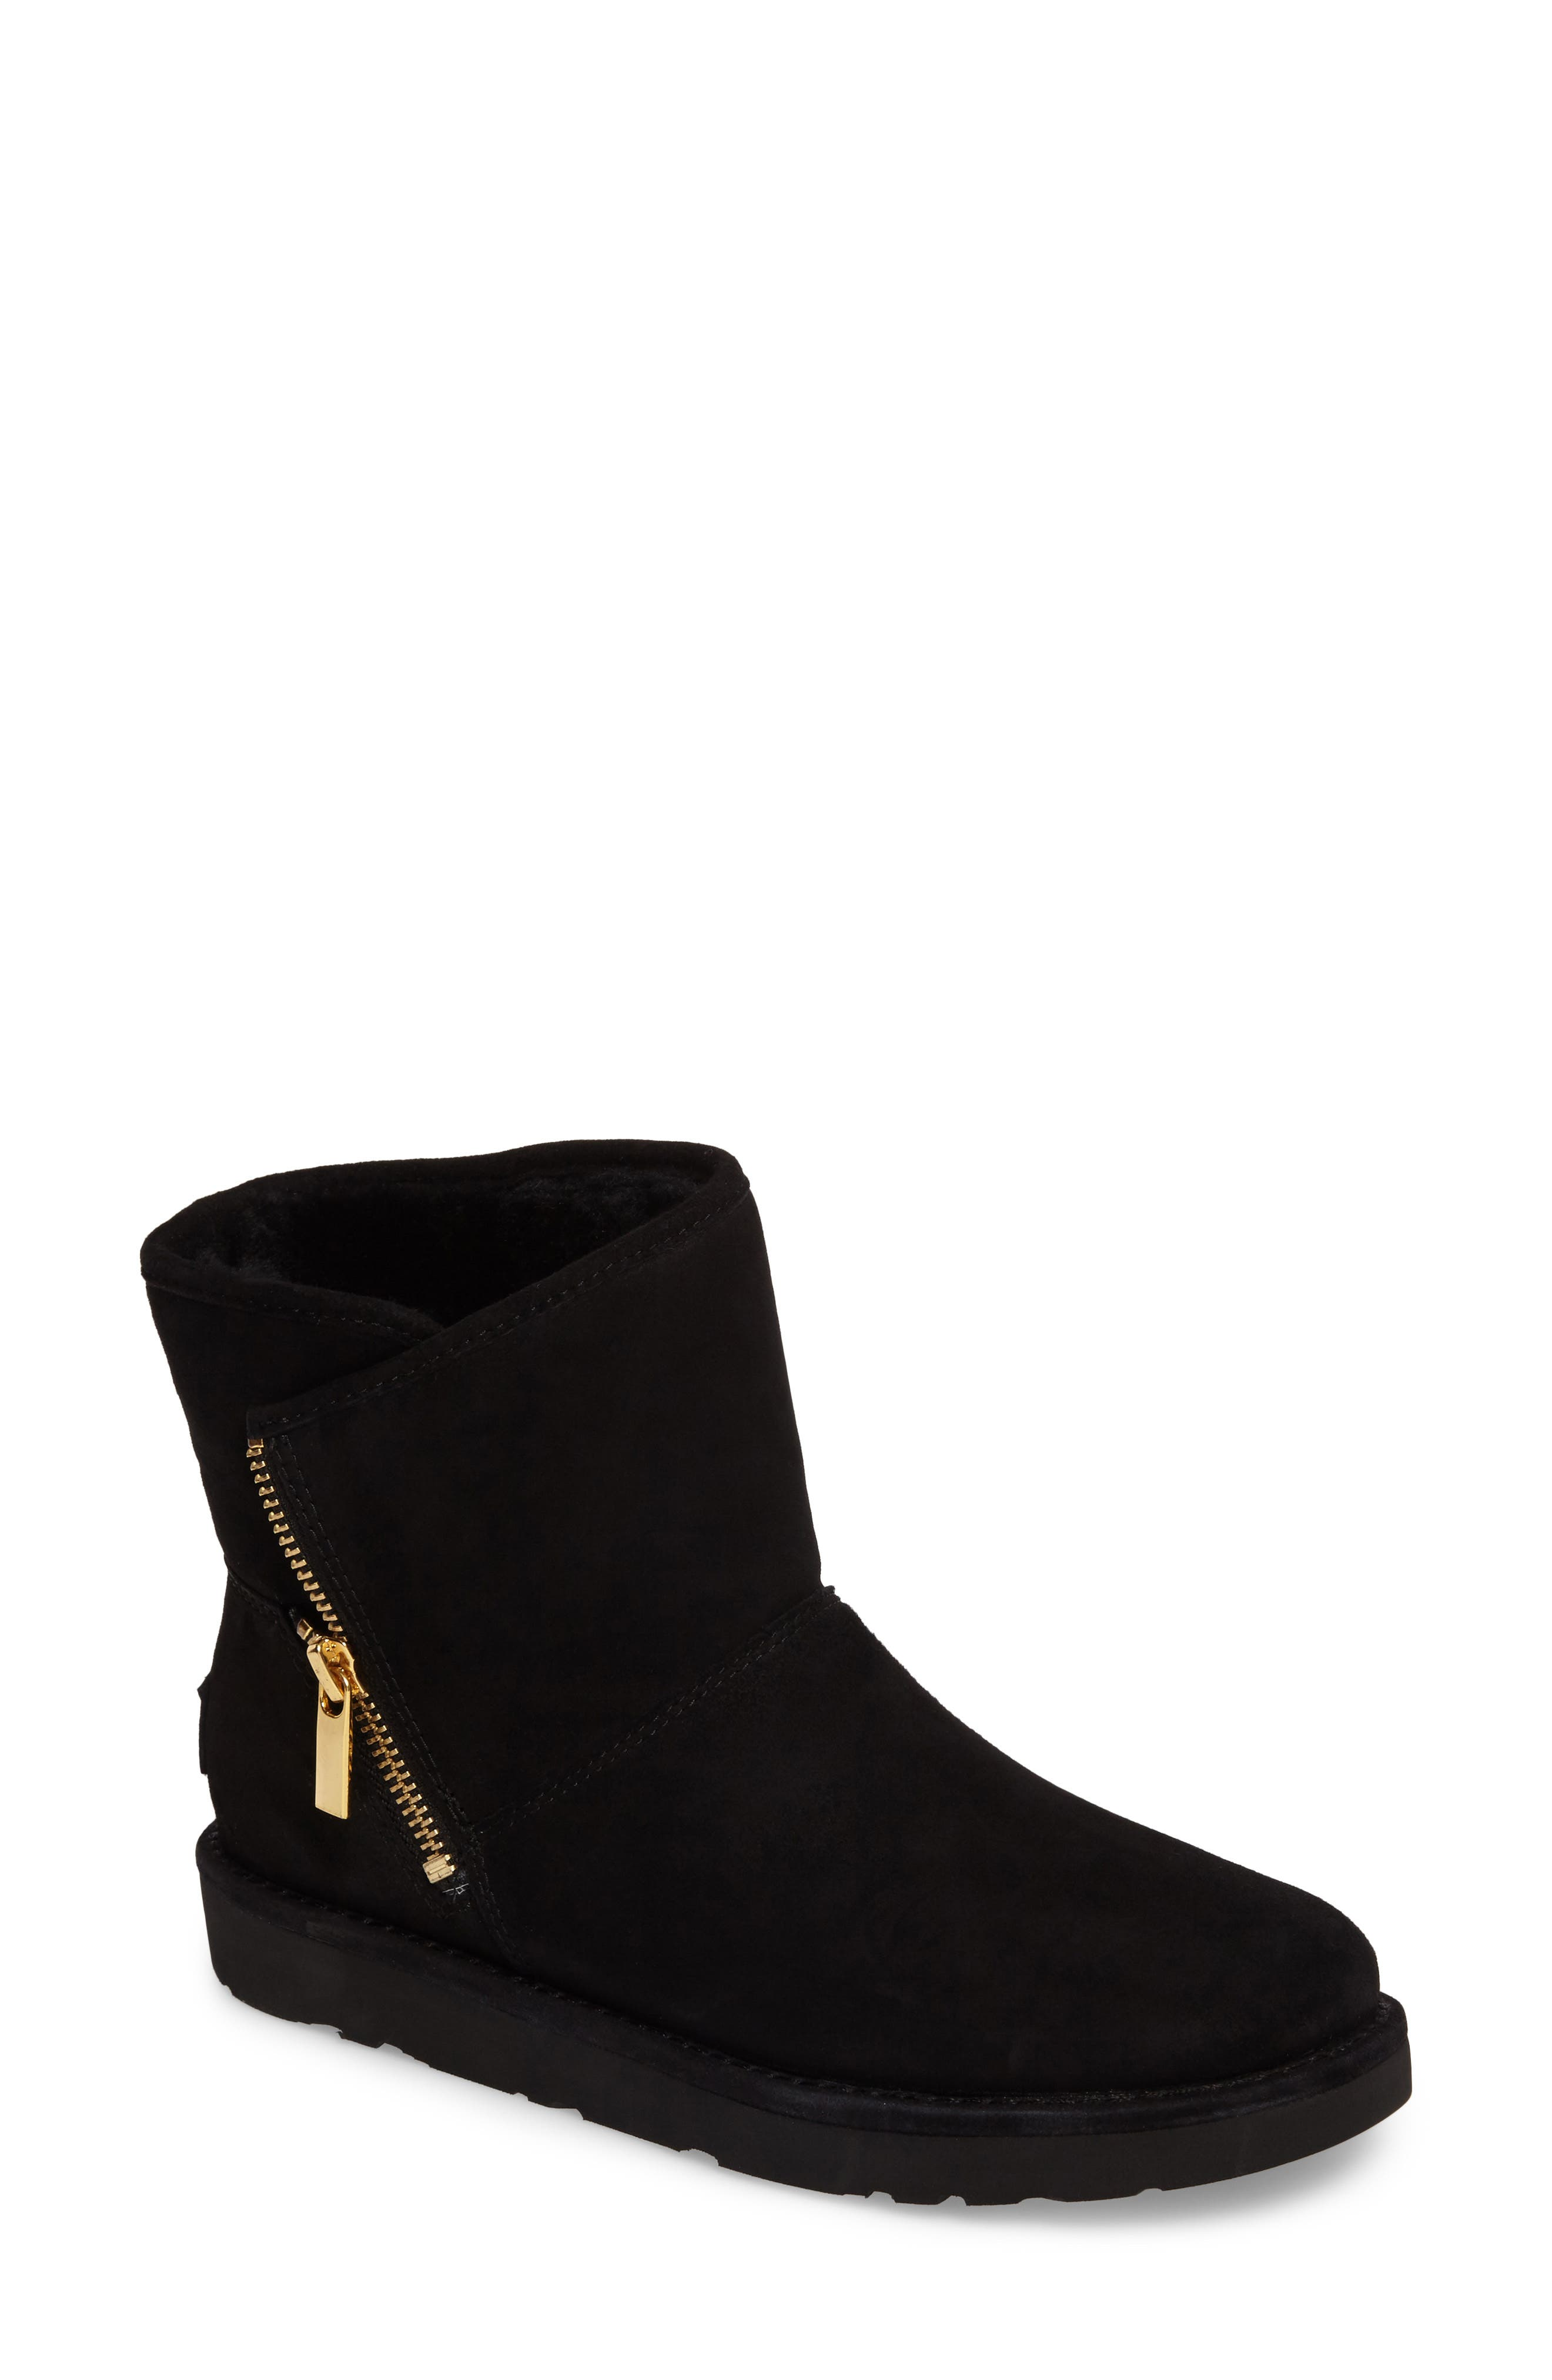 Alternate Image 1 Selected - UGG® Kip Boot (Women)